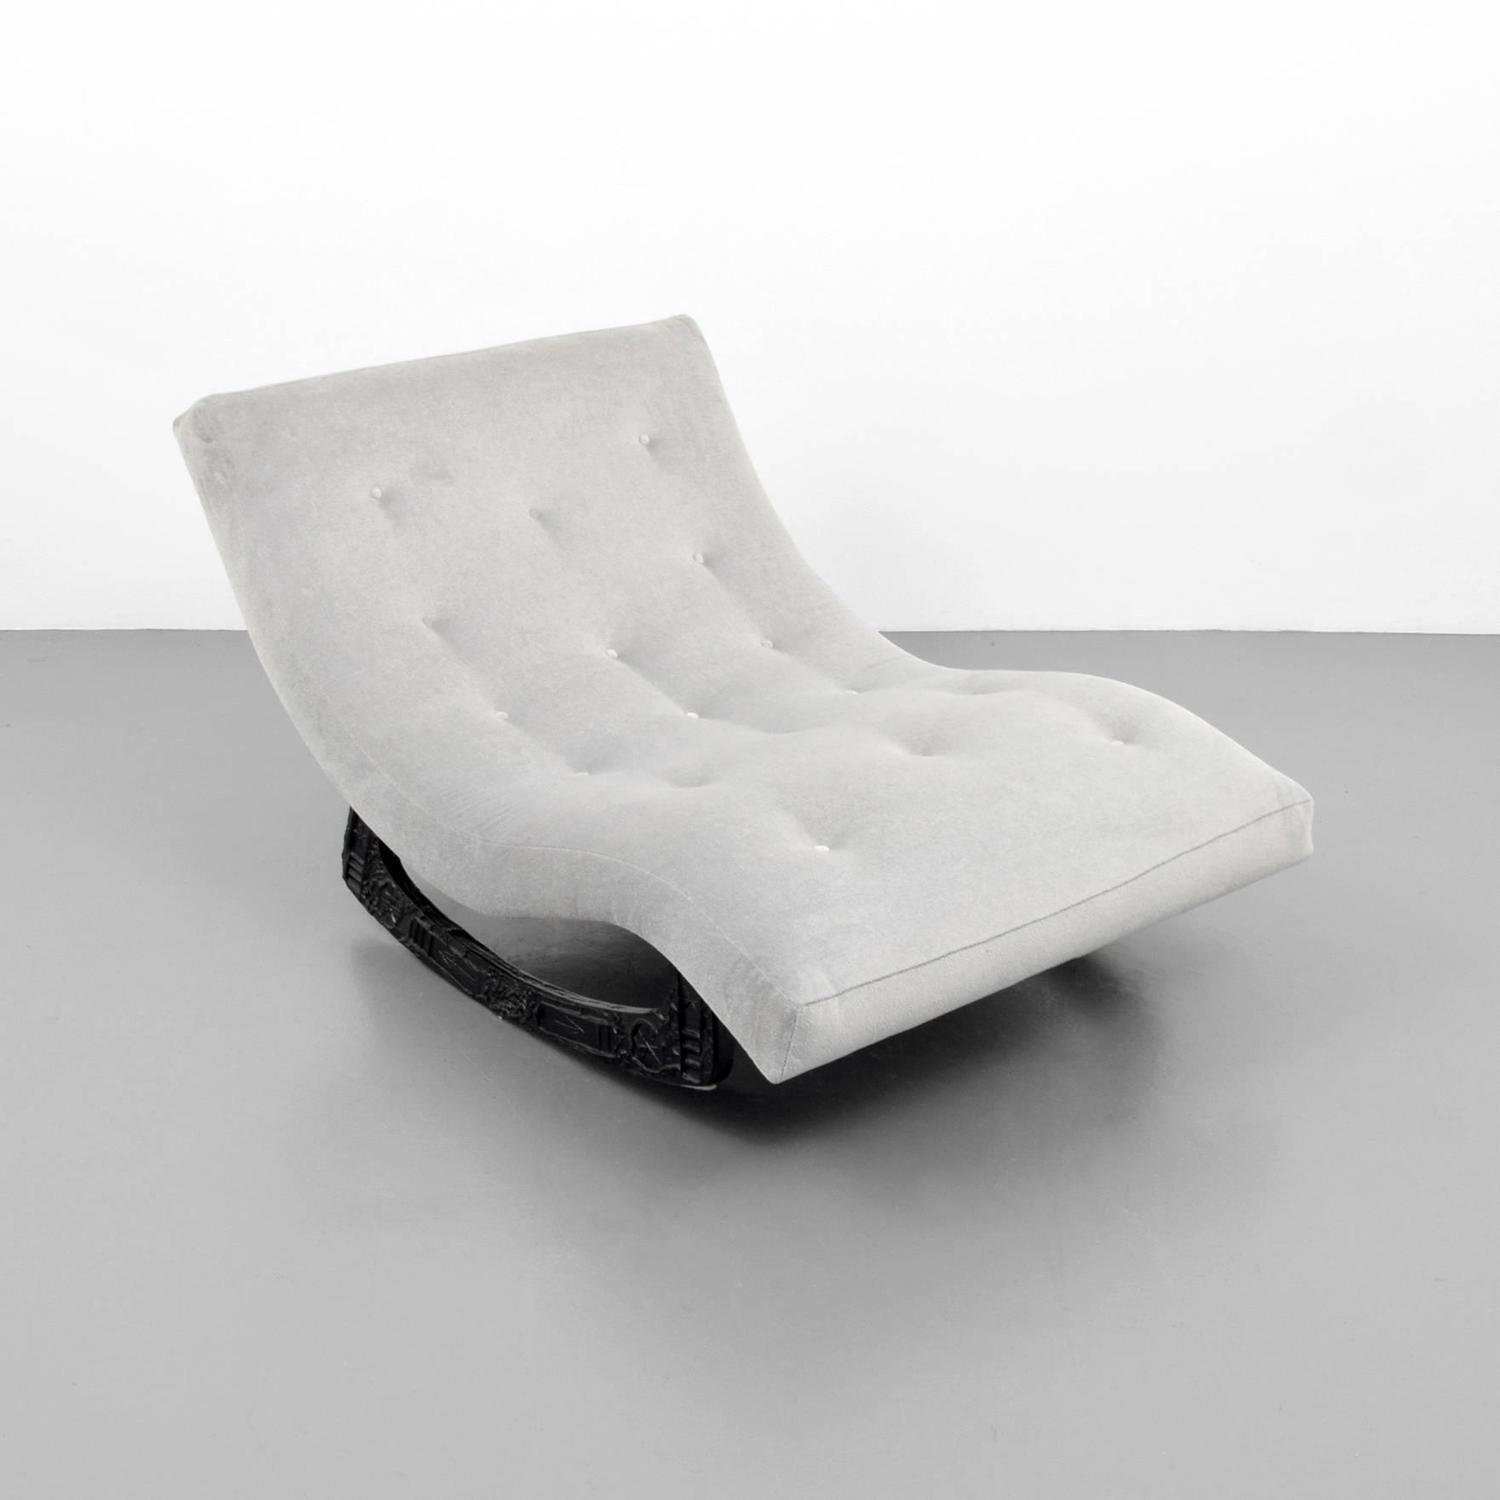 adrian pearsall rocking chair crushed velvet cushions brutalist lounge chaise